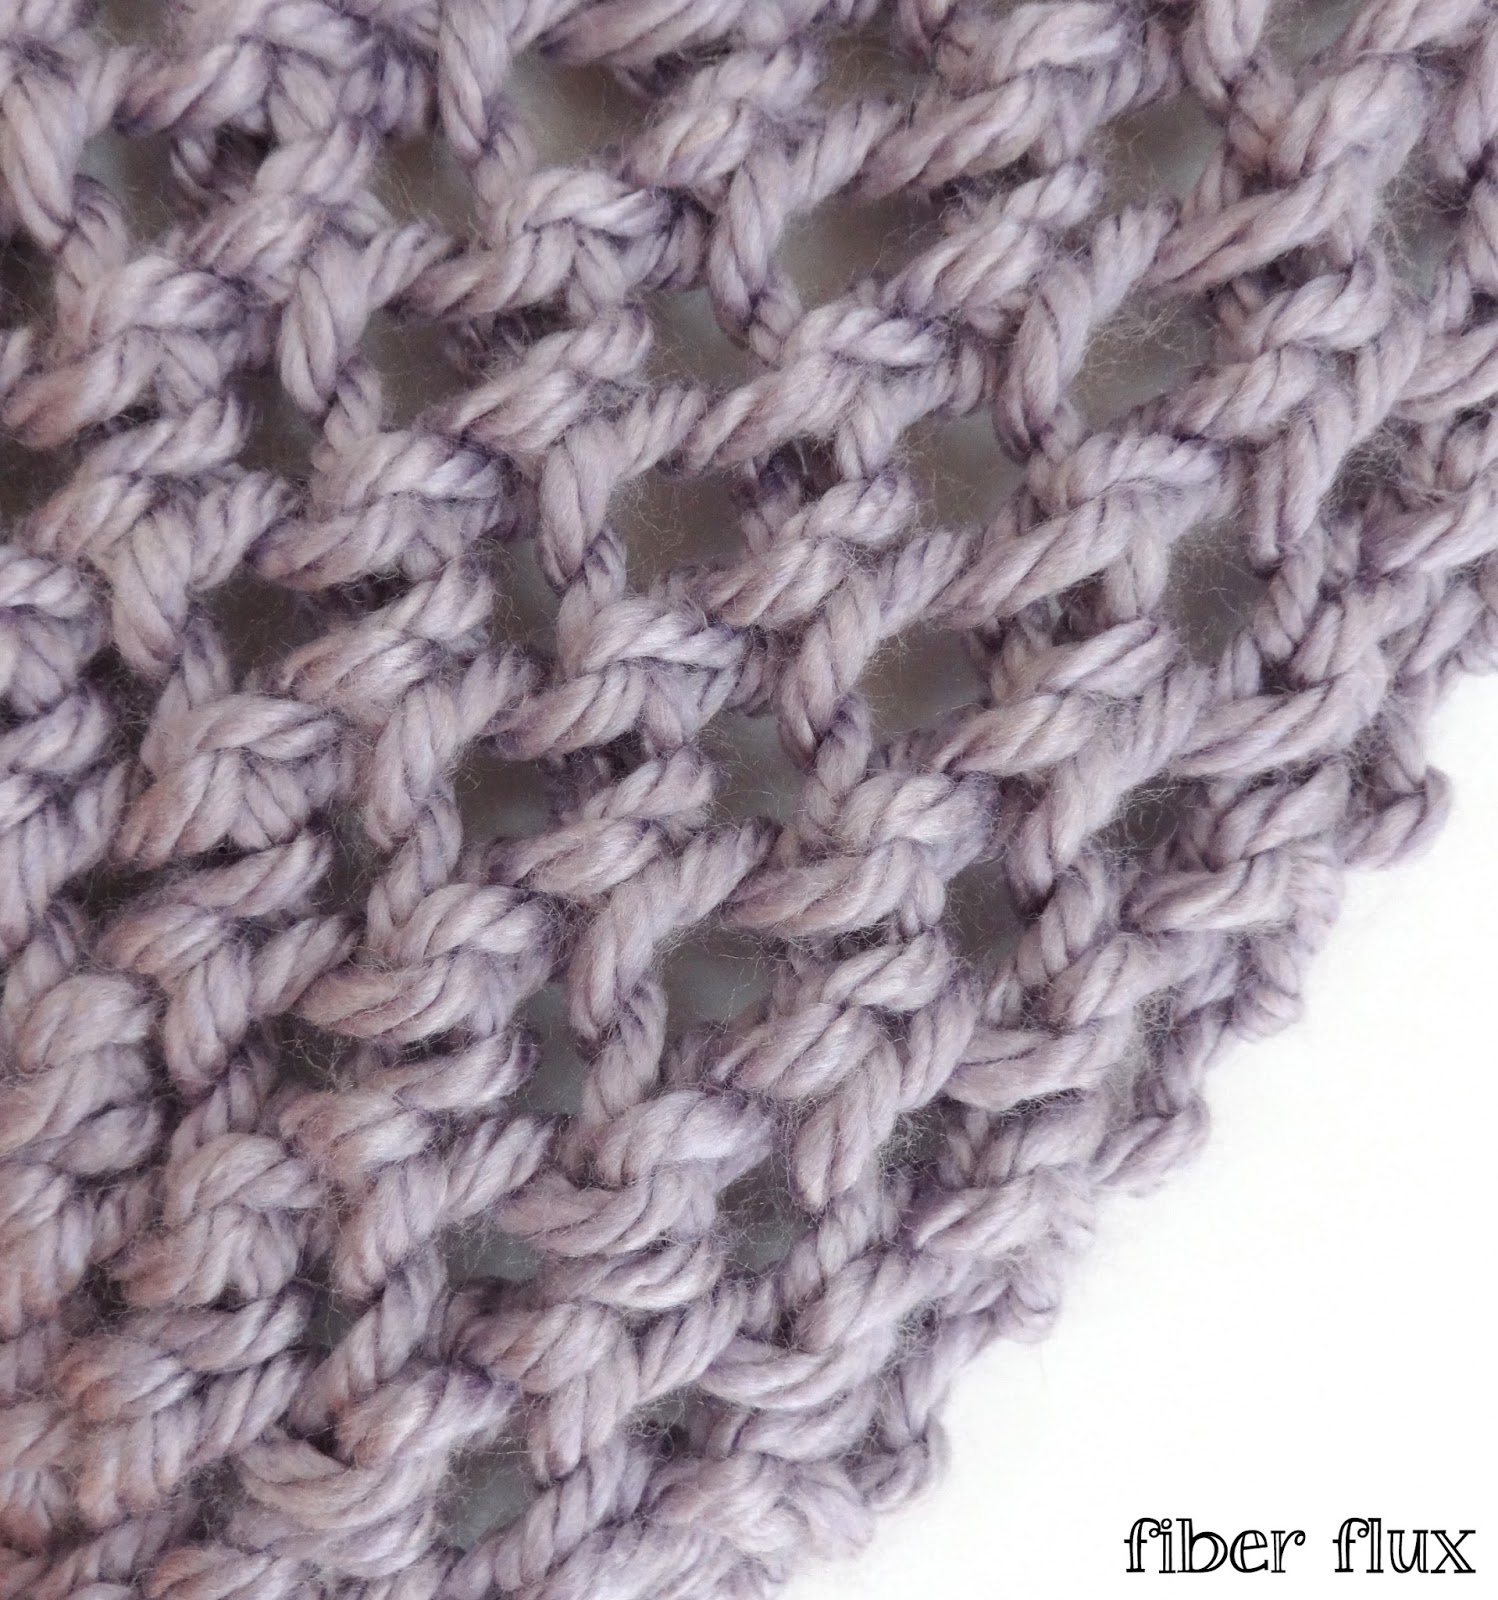 Free Knitting Patterns For Lace Headbands : Fiber Flux: Free Knitting Pattern: Annabelle Lace Headband!